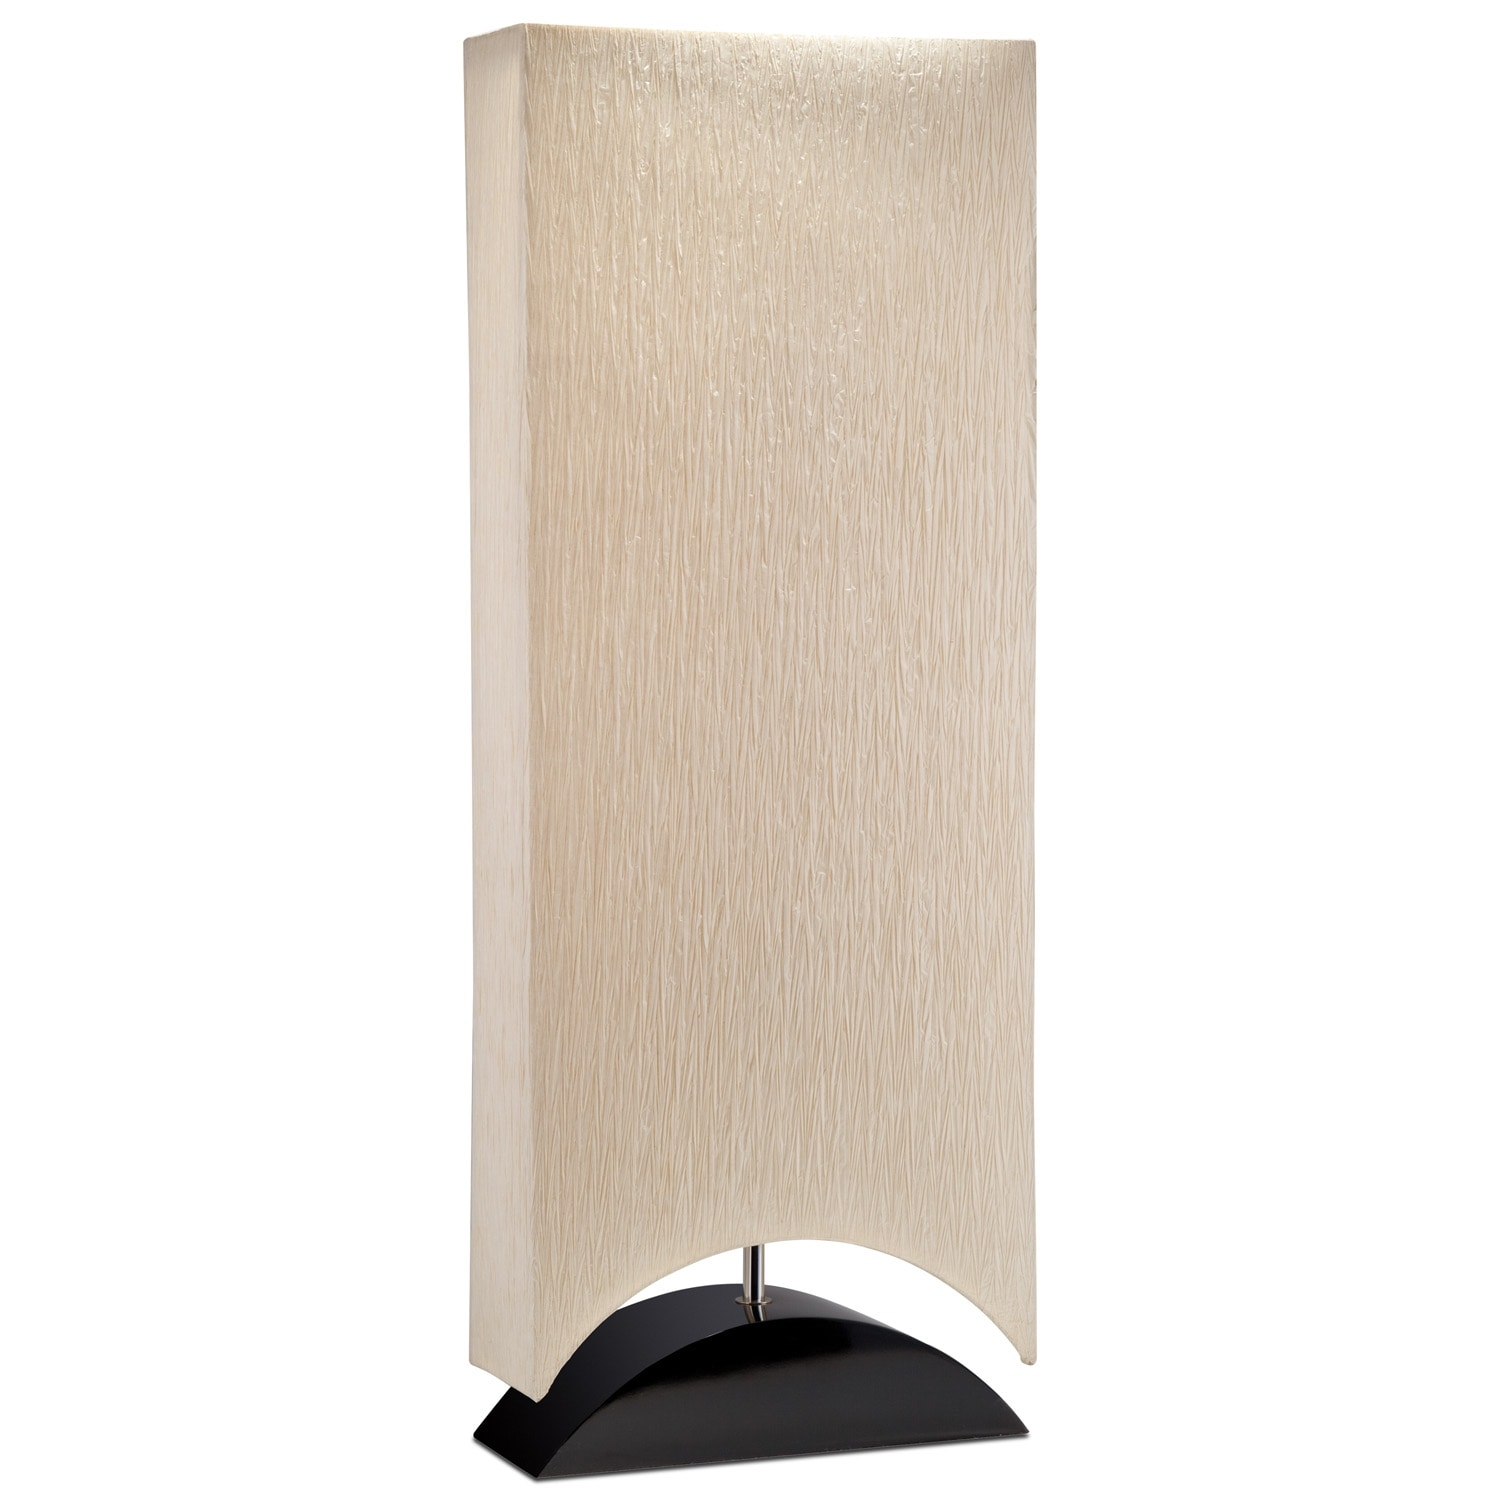 Floor Lamp Paper Shade: Paper Shade Floor Lamp,Lighting